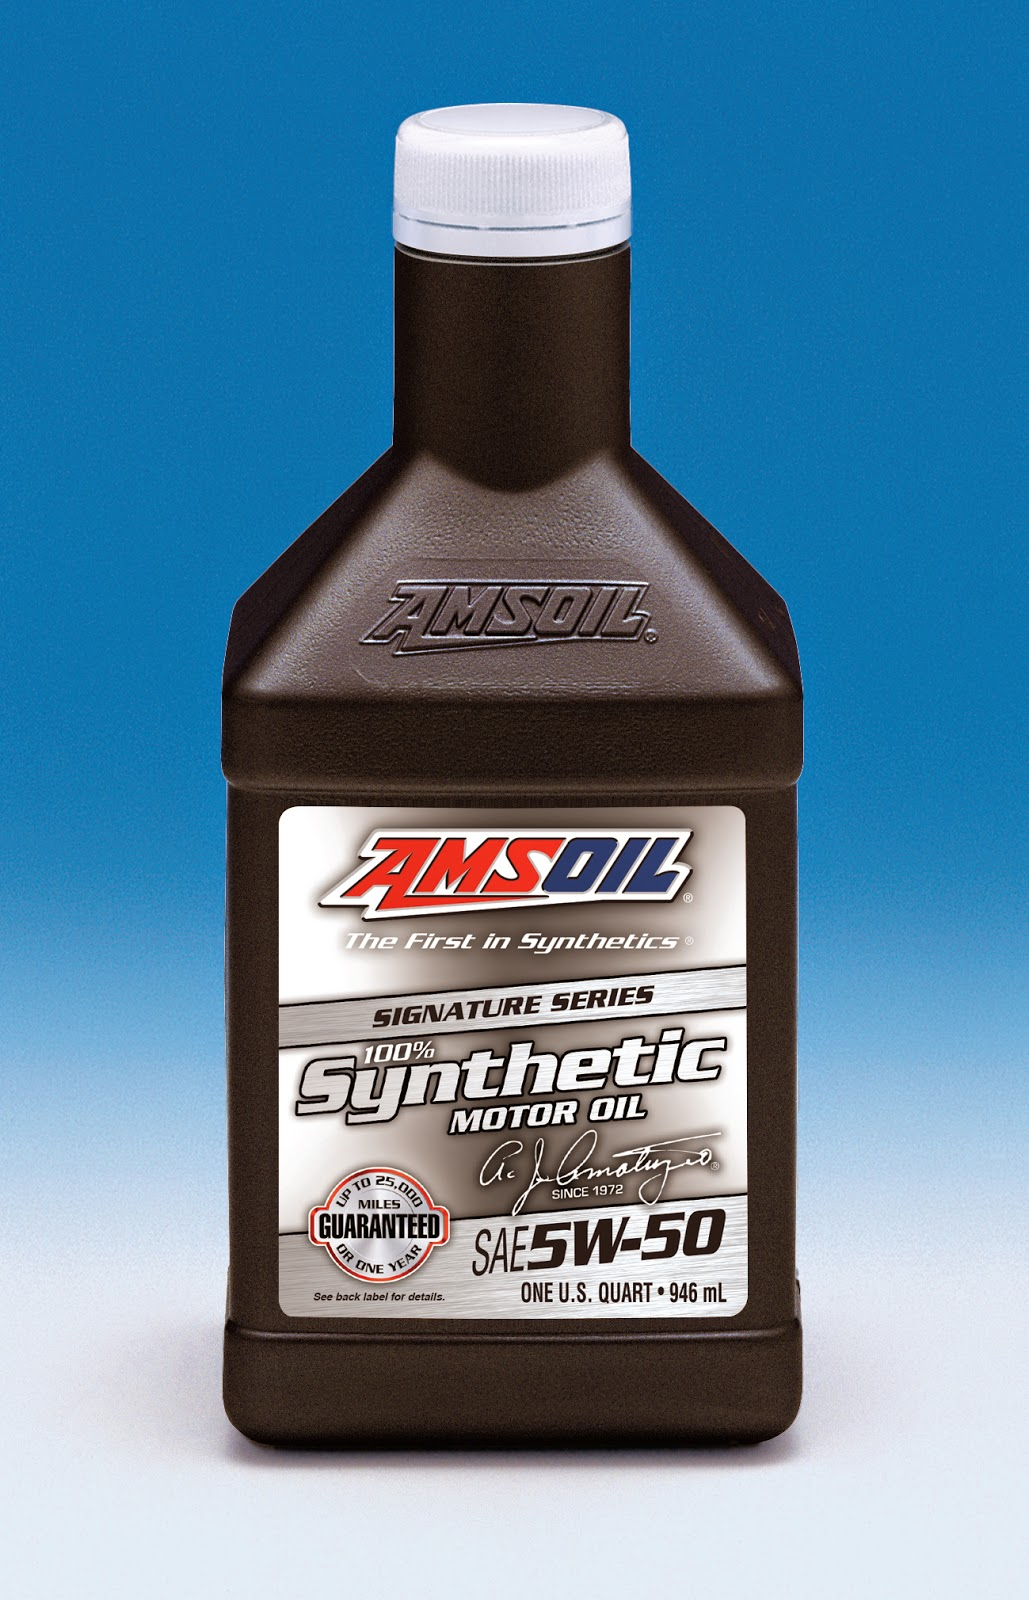 Synthetic 5W 50 oil for High Horsepower Ford Mustangs